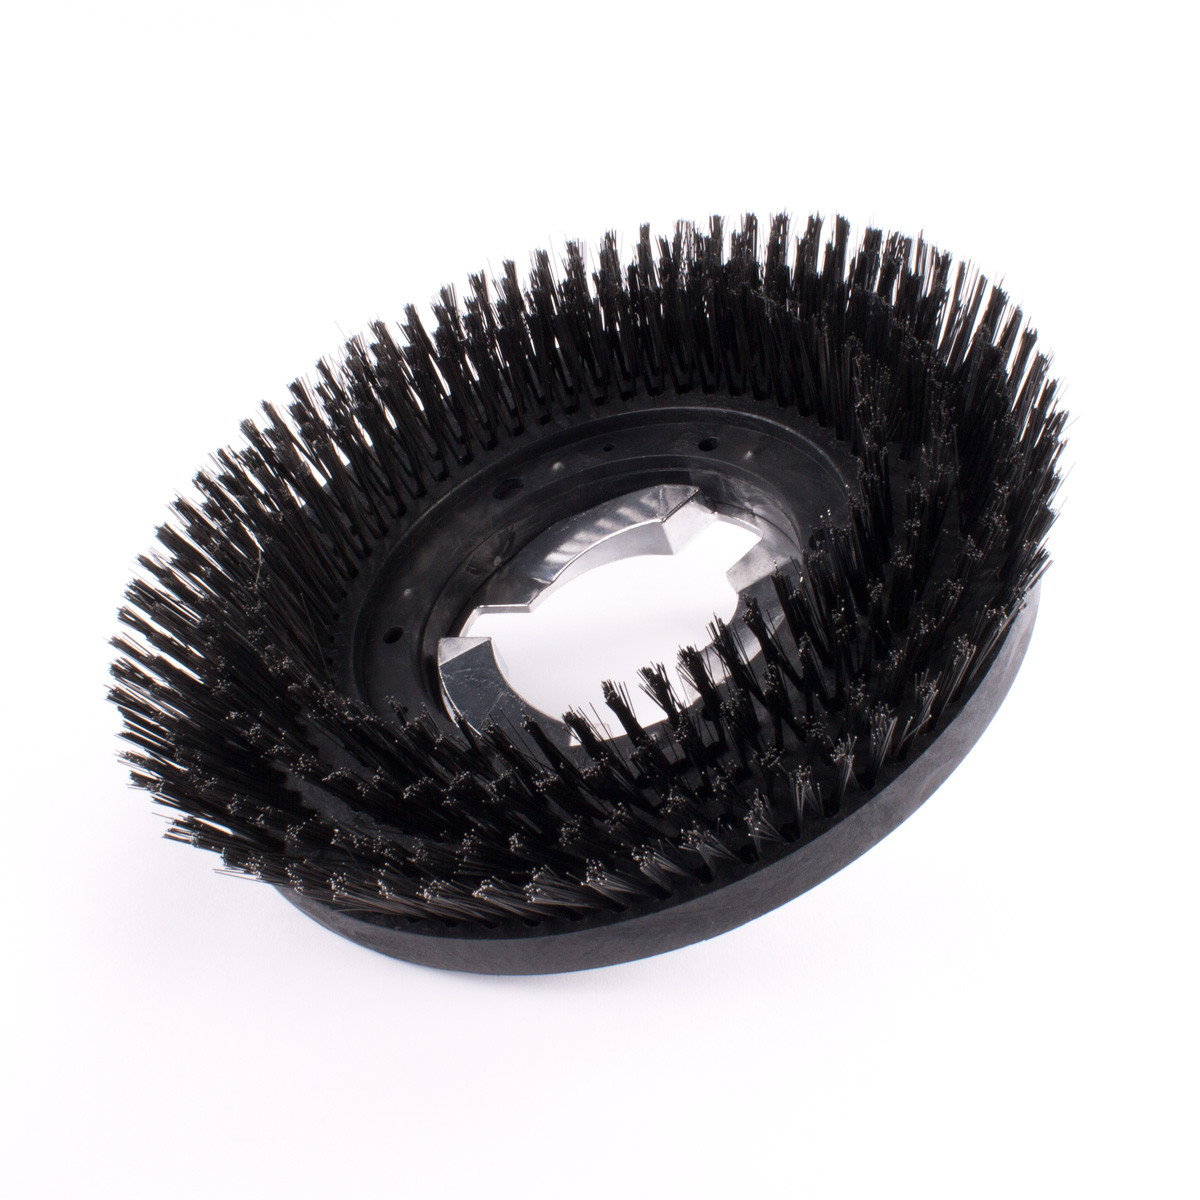 15 Inch Aggressive Wire Floor Scrubbing Brush Fits